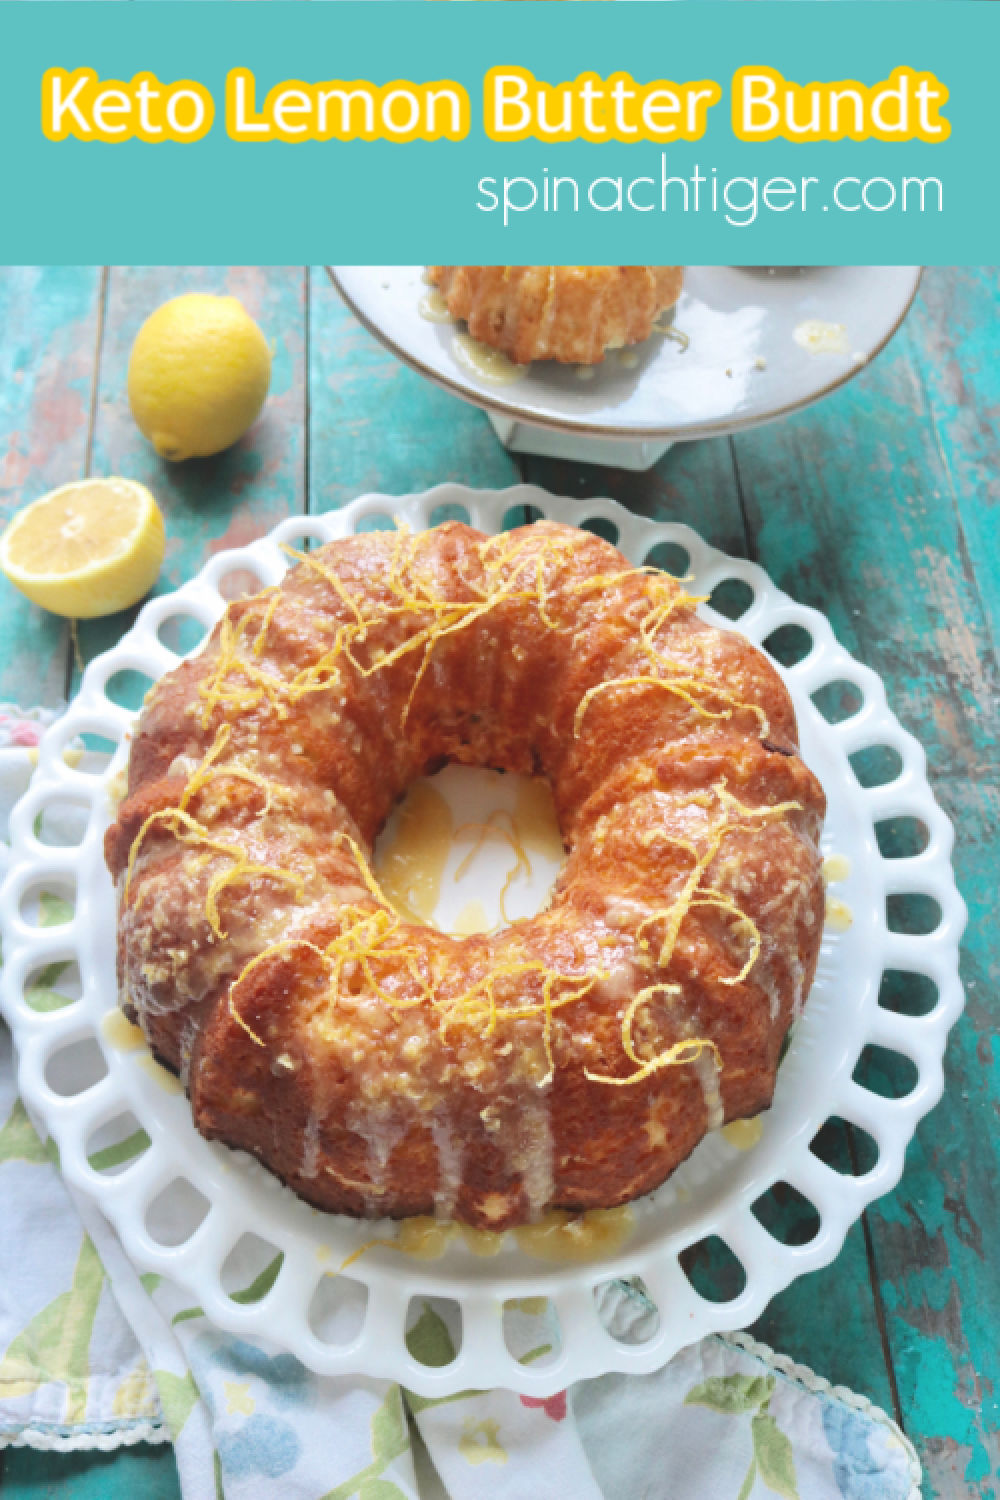 Keto -Paleo Lemon Butter Bundt Cake, made with fresh lemon juice, almond flour, coconut flour. Learn the best tips for releasing a bundt and making a perfect lemon butter topping. #ketolemoncake #ketolemonbundt #paleolemoncake #paleocake #glutenfree #spinachtiger via @angelaroberts